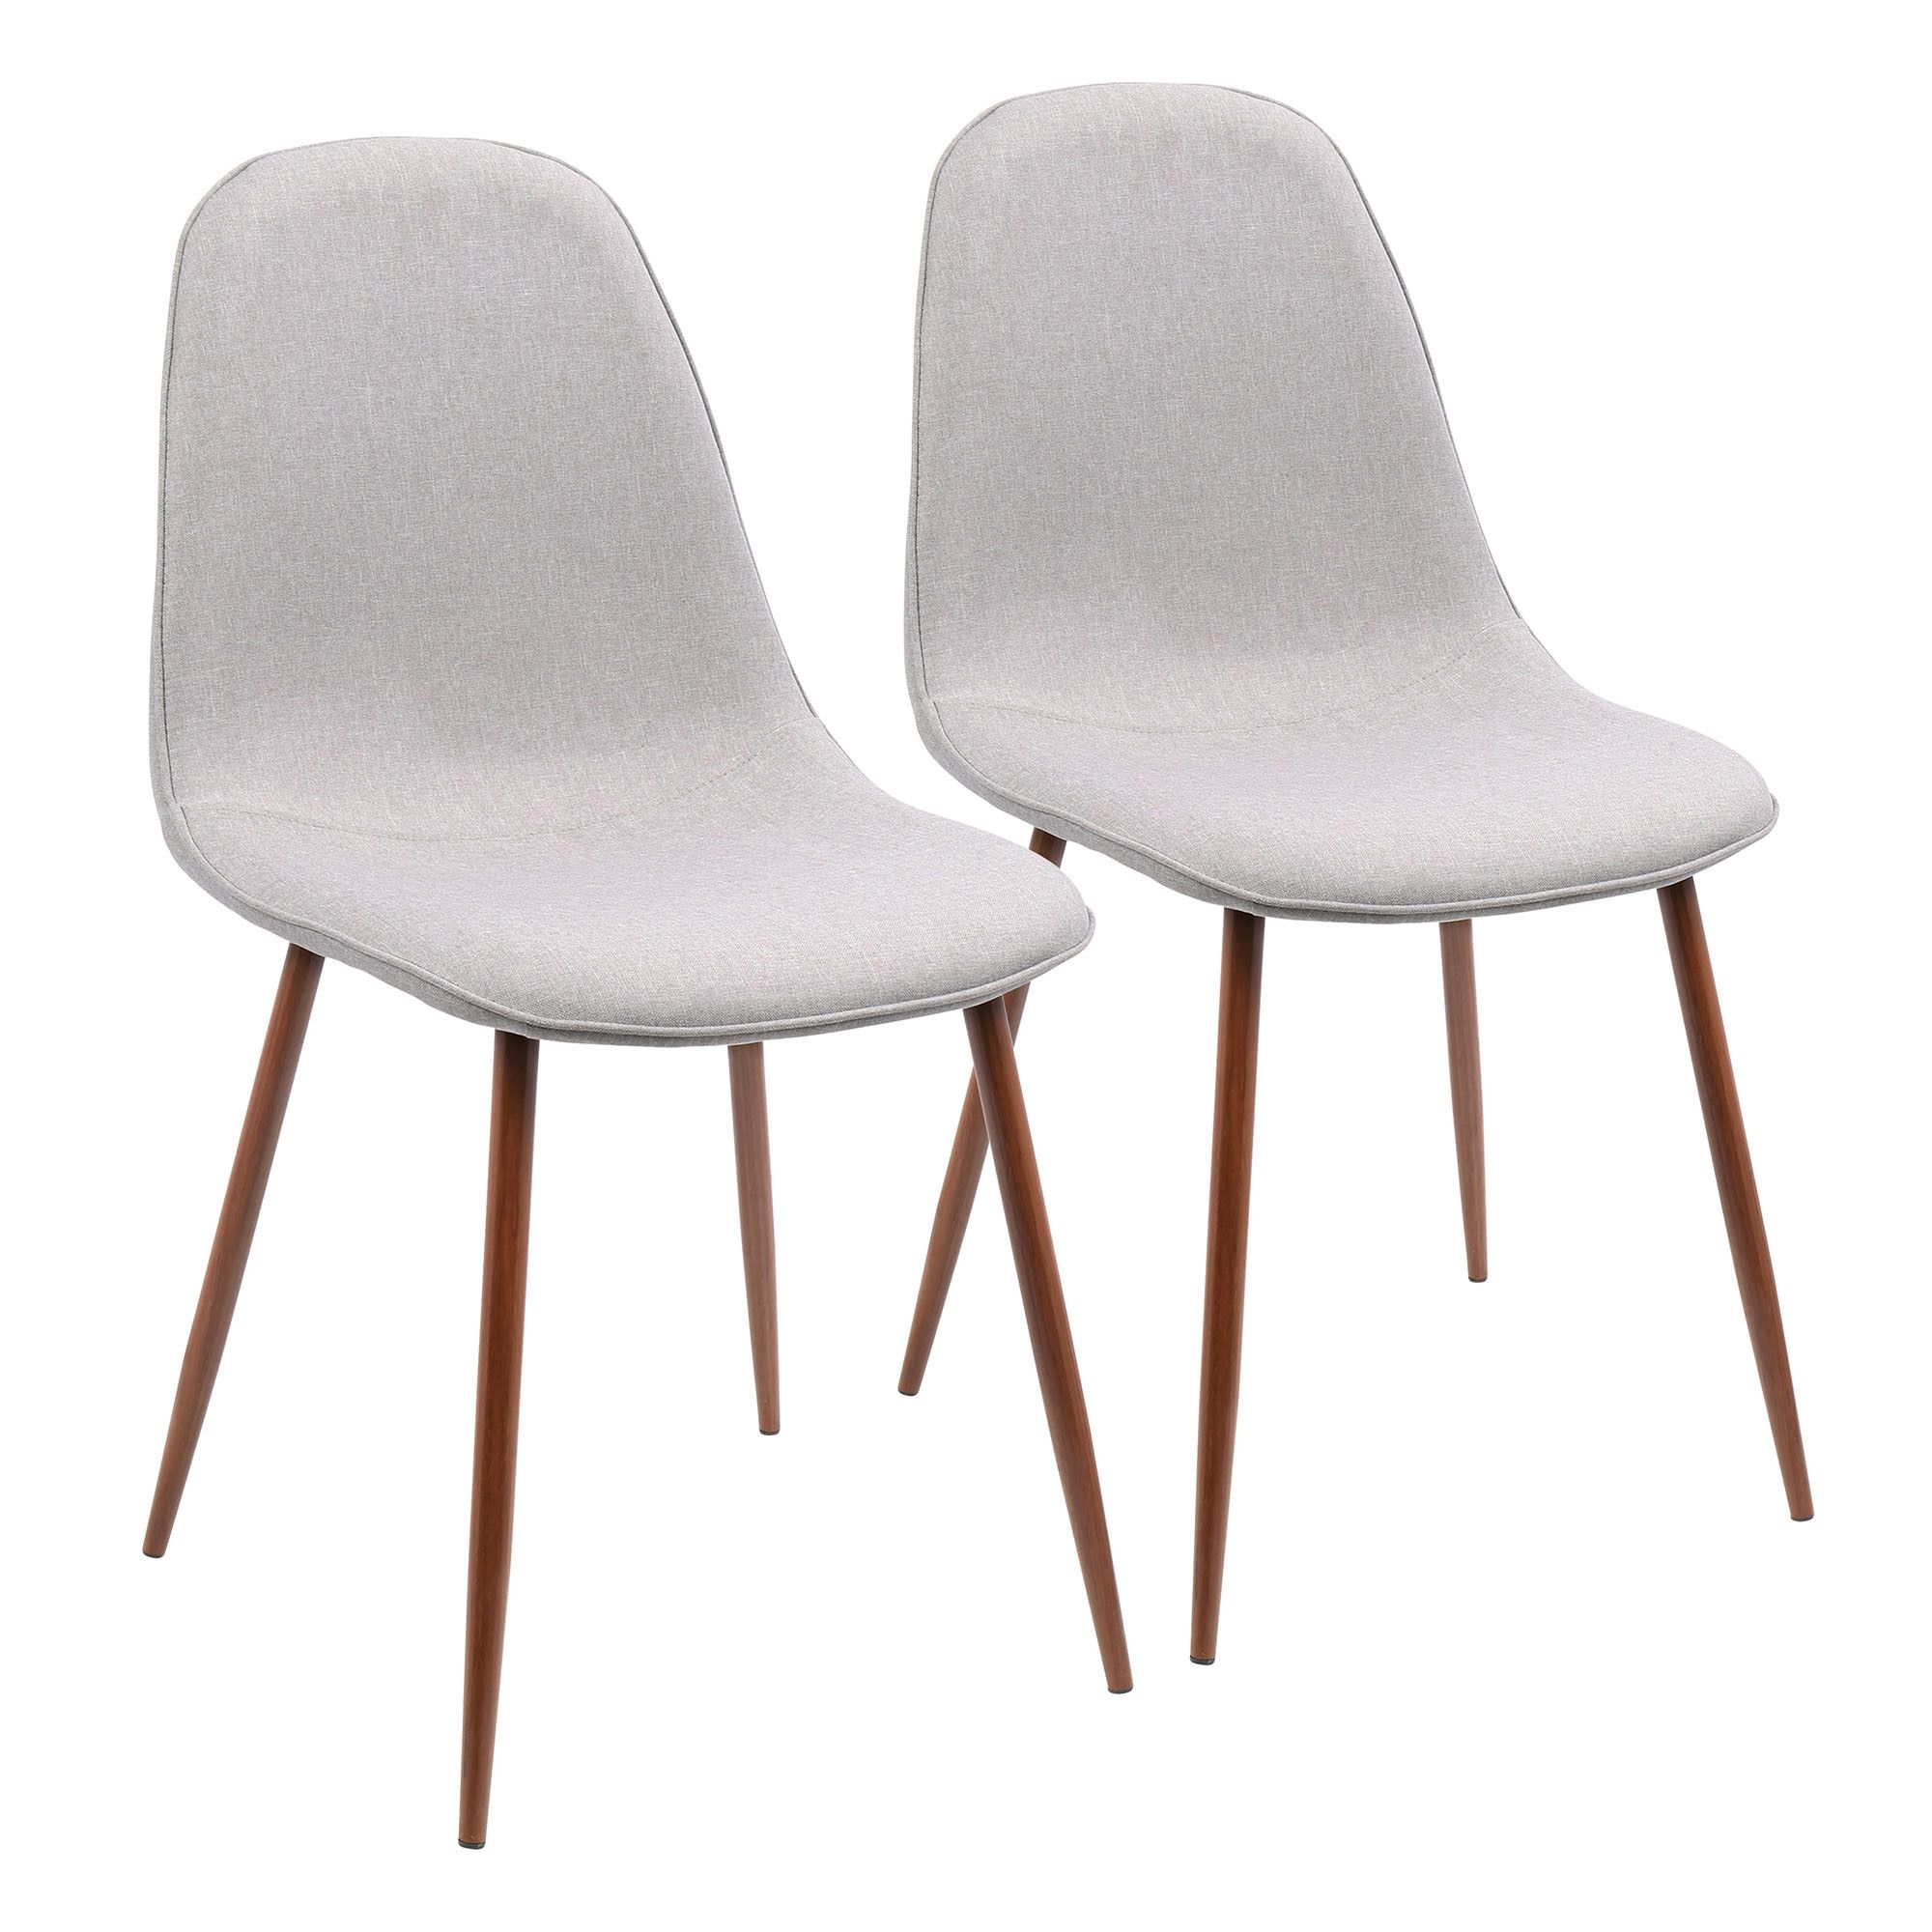 Pebble Mid Century Modern Dining Accent Chair In Walnut Grey